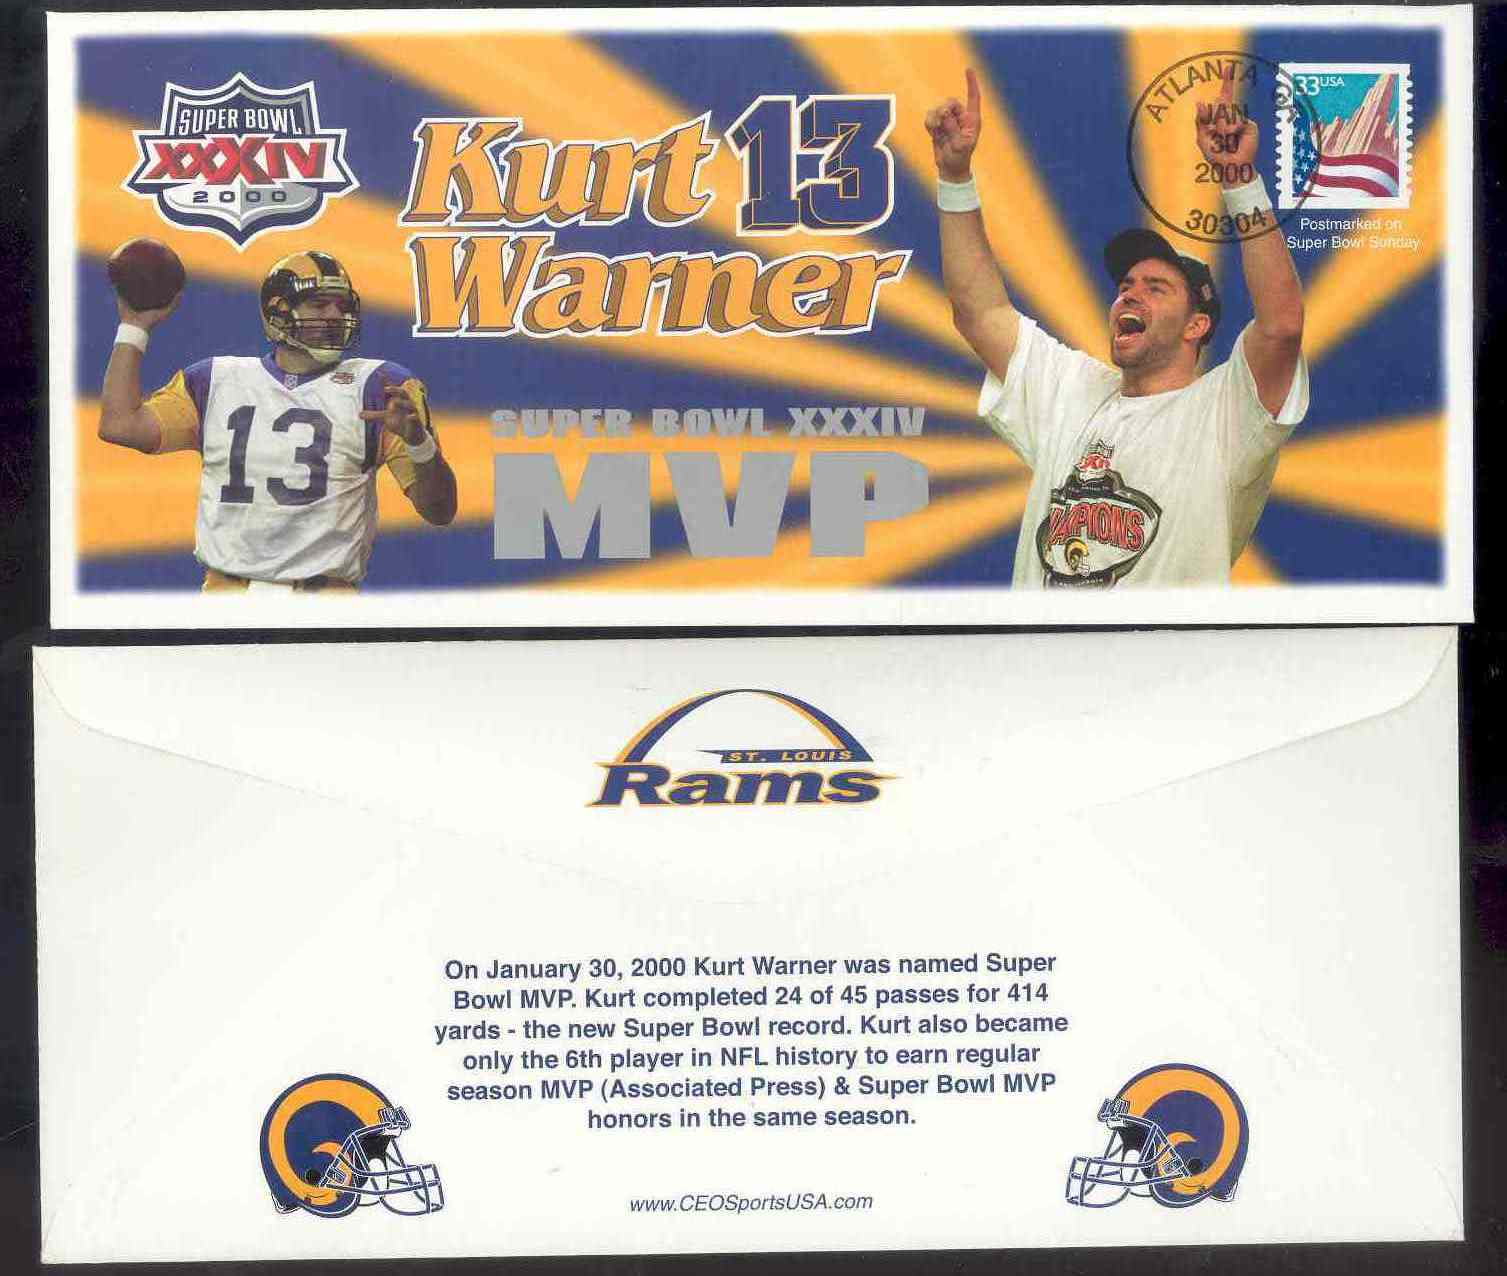 1999-2000 First Day Rookie Cover Kurt Warner Collectible Envelope Postmarked Jan 30 2000 on the Day he was annouced Super Bowl MVP